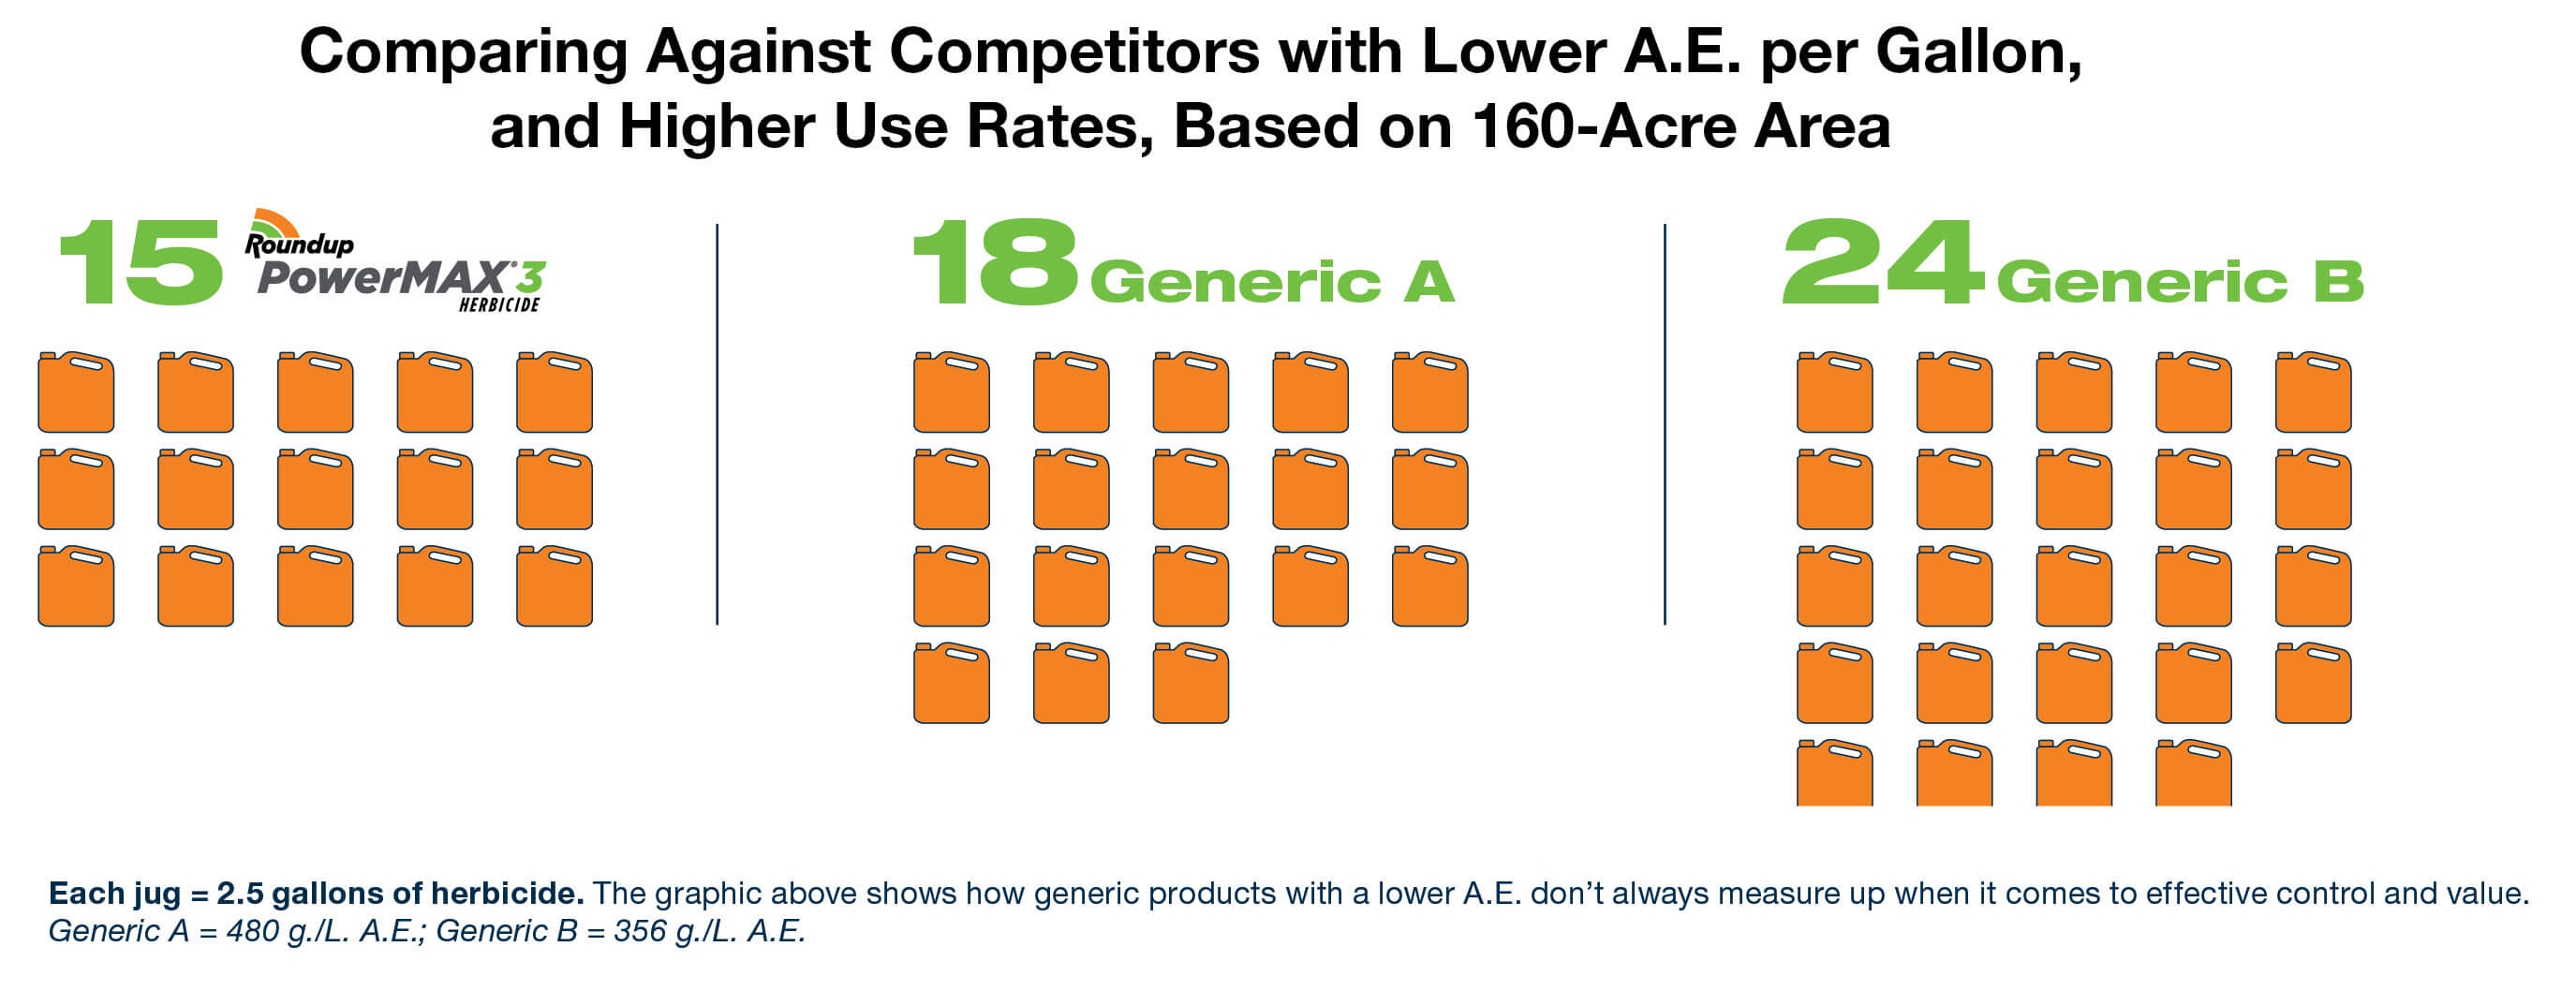 Roundup PowerMAX 3 vs competitors' comparison for lower A.E per gallon, and higher use rates based on 160-acre area